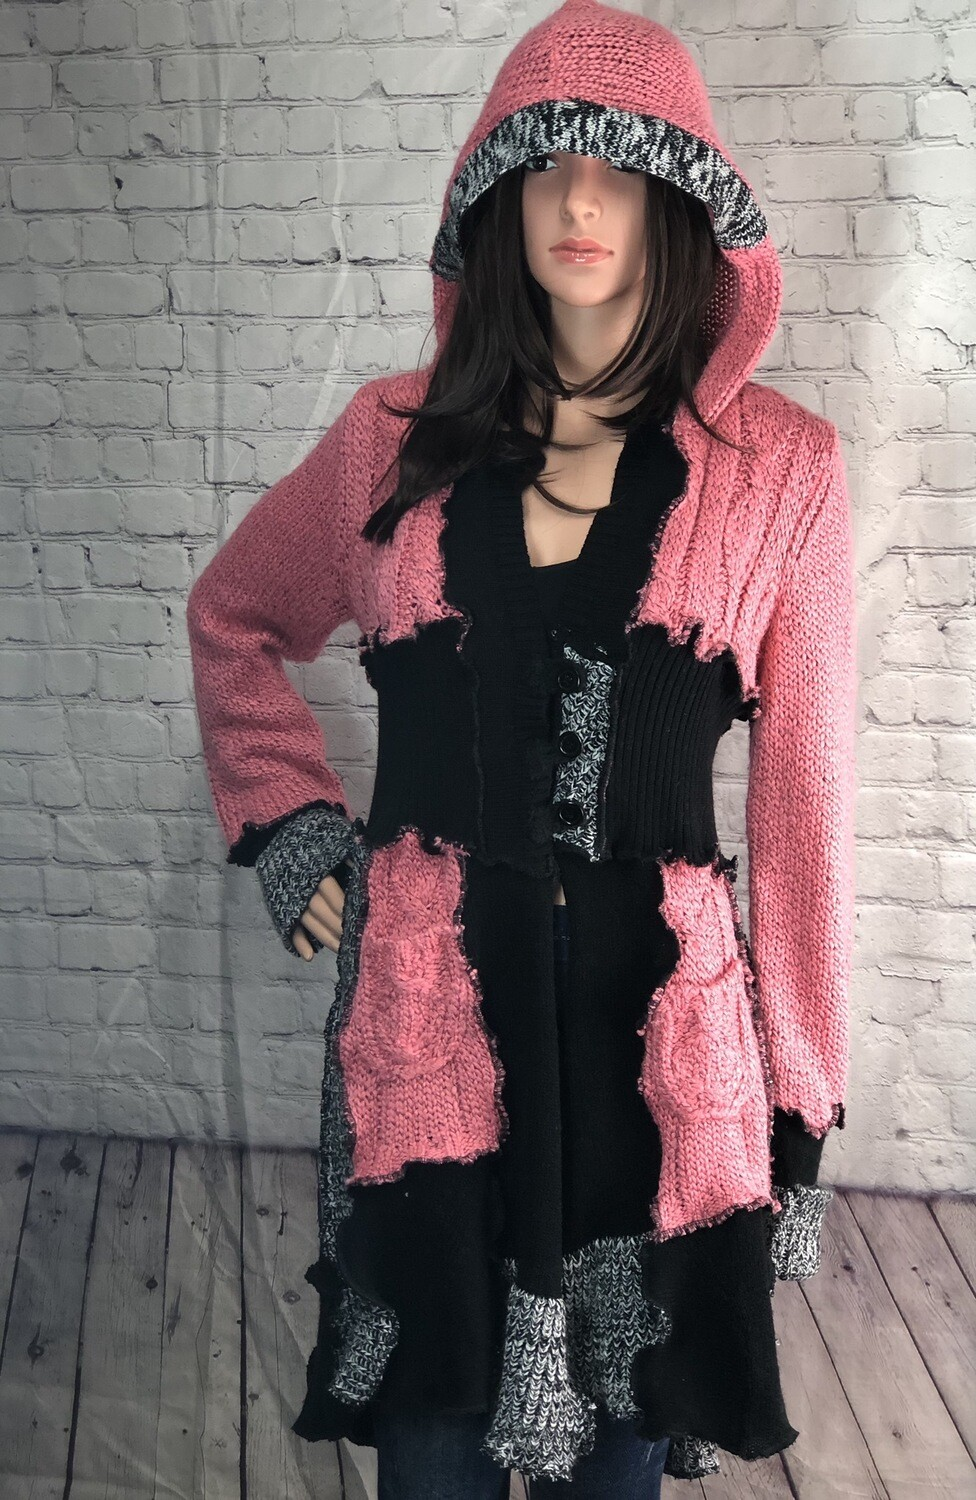 S Threads Upcycled Katwise Inspired Sweater DreamCoat Hooded Buttons Pockets Boho OOAK Size XL